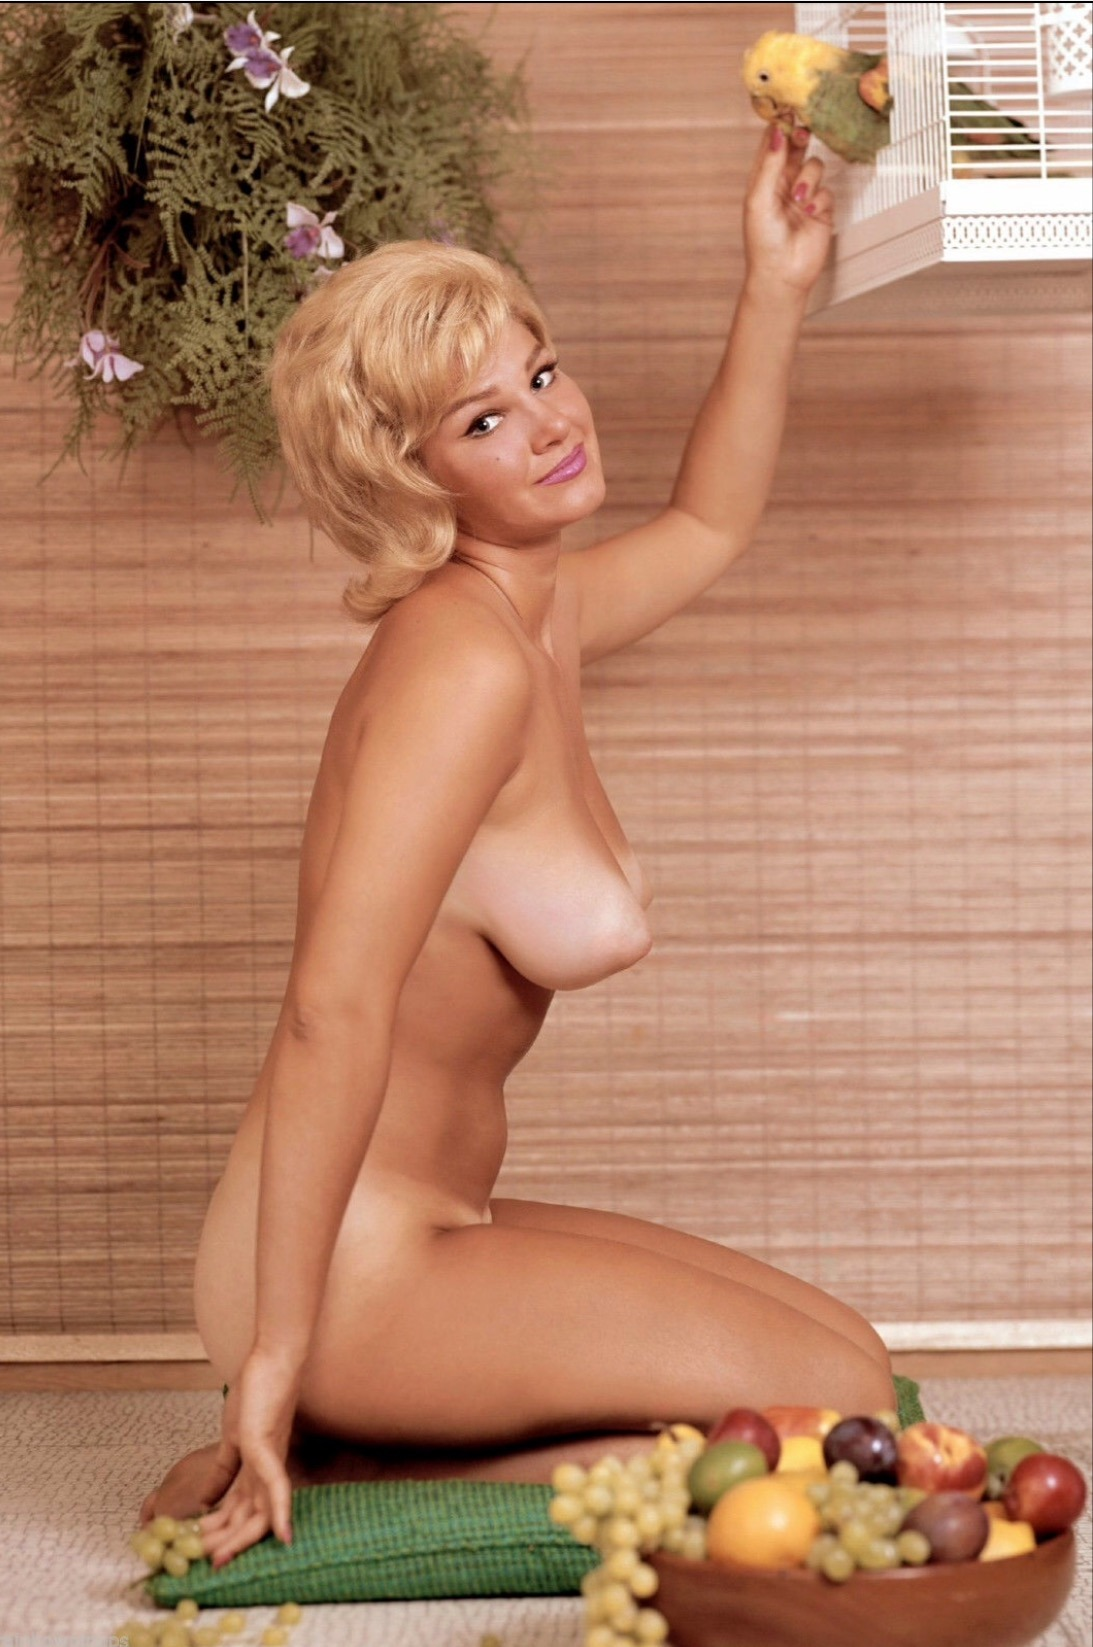 Loni anderson nude and bondage